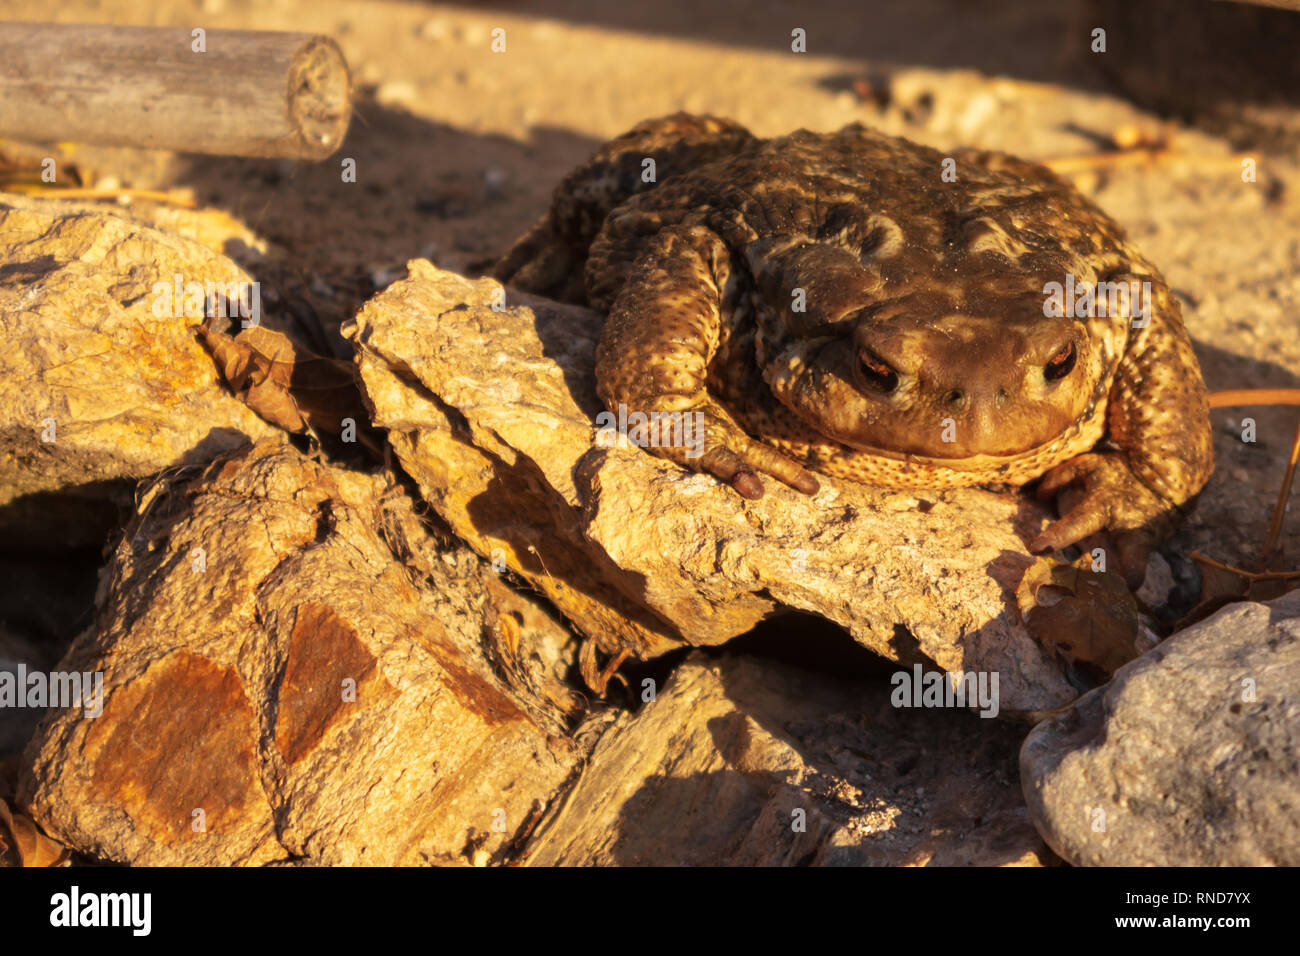 Bufo Spinosus, Spiney Toad - Stock Image